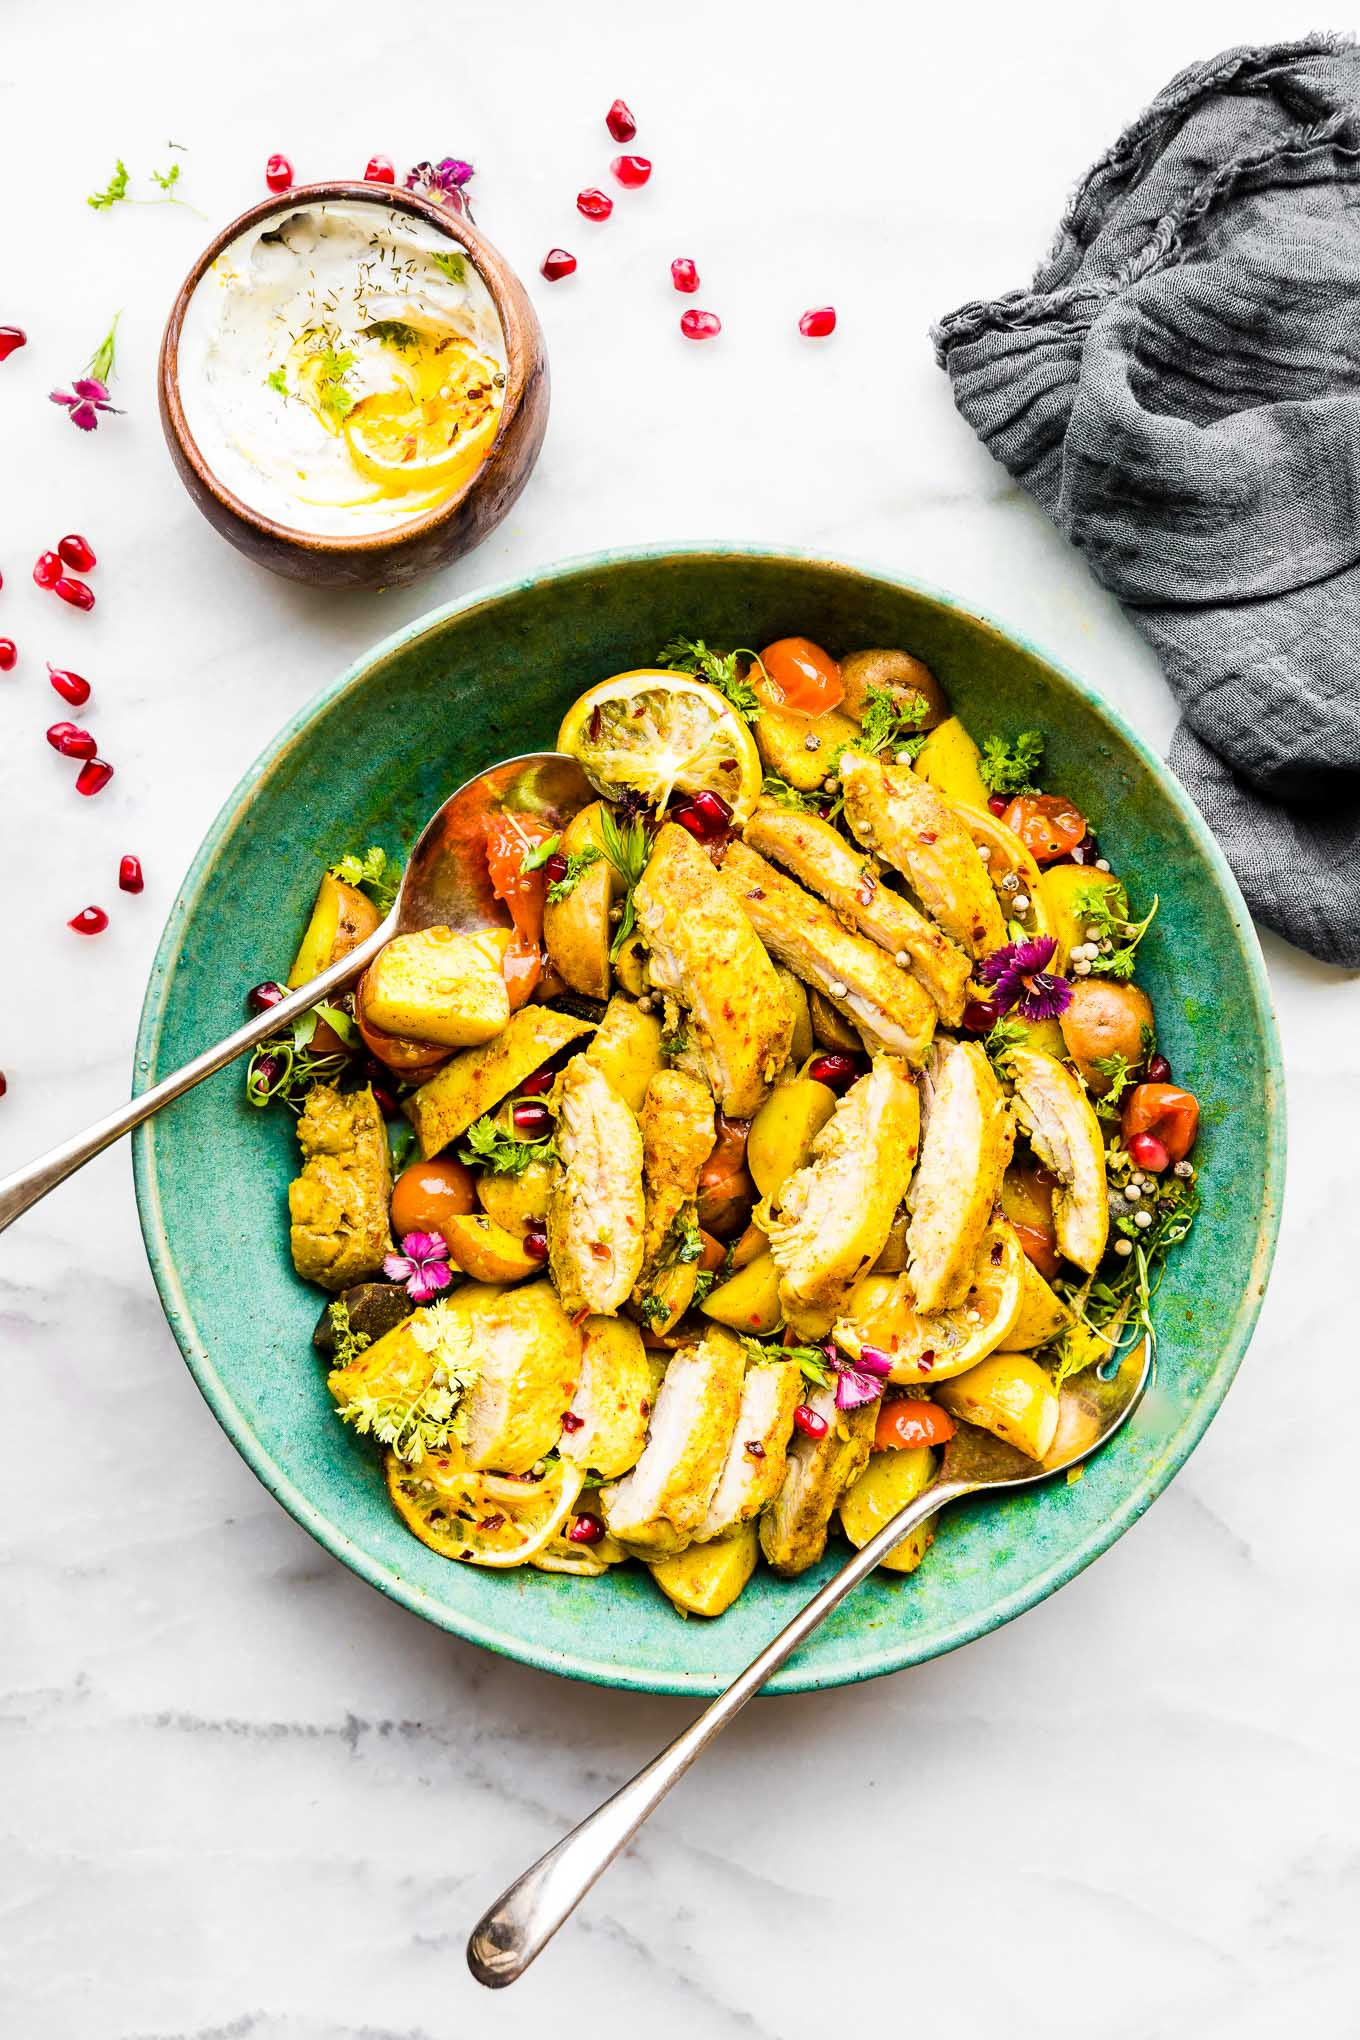 Lemon CHicken Bake - Persian Spiced One Pan Meal!